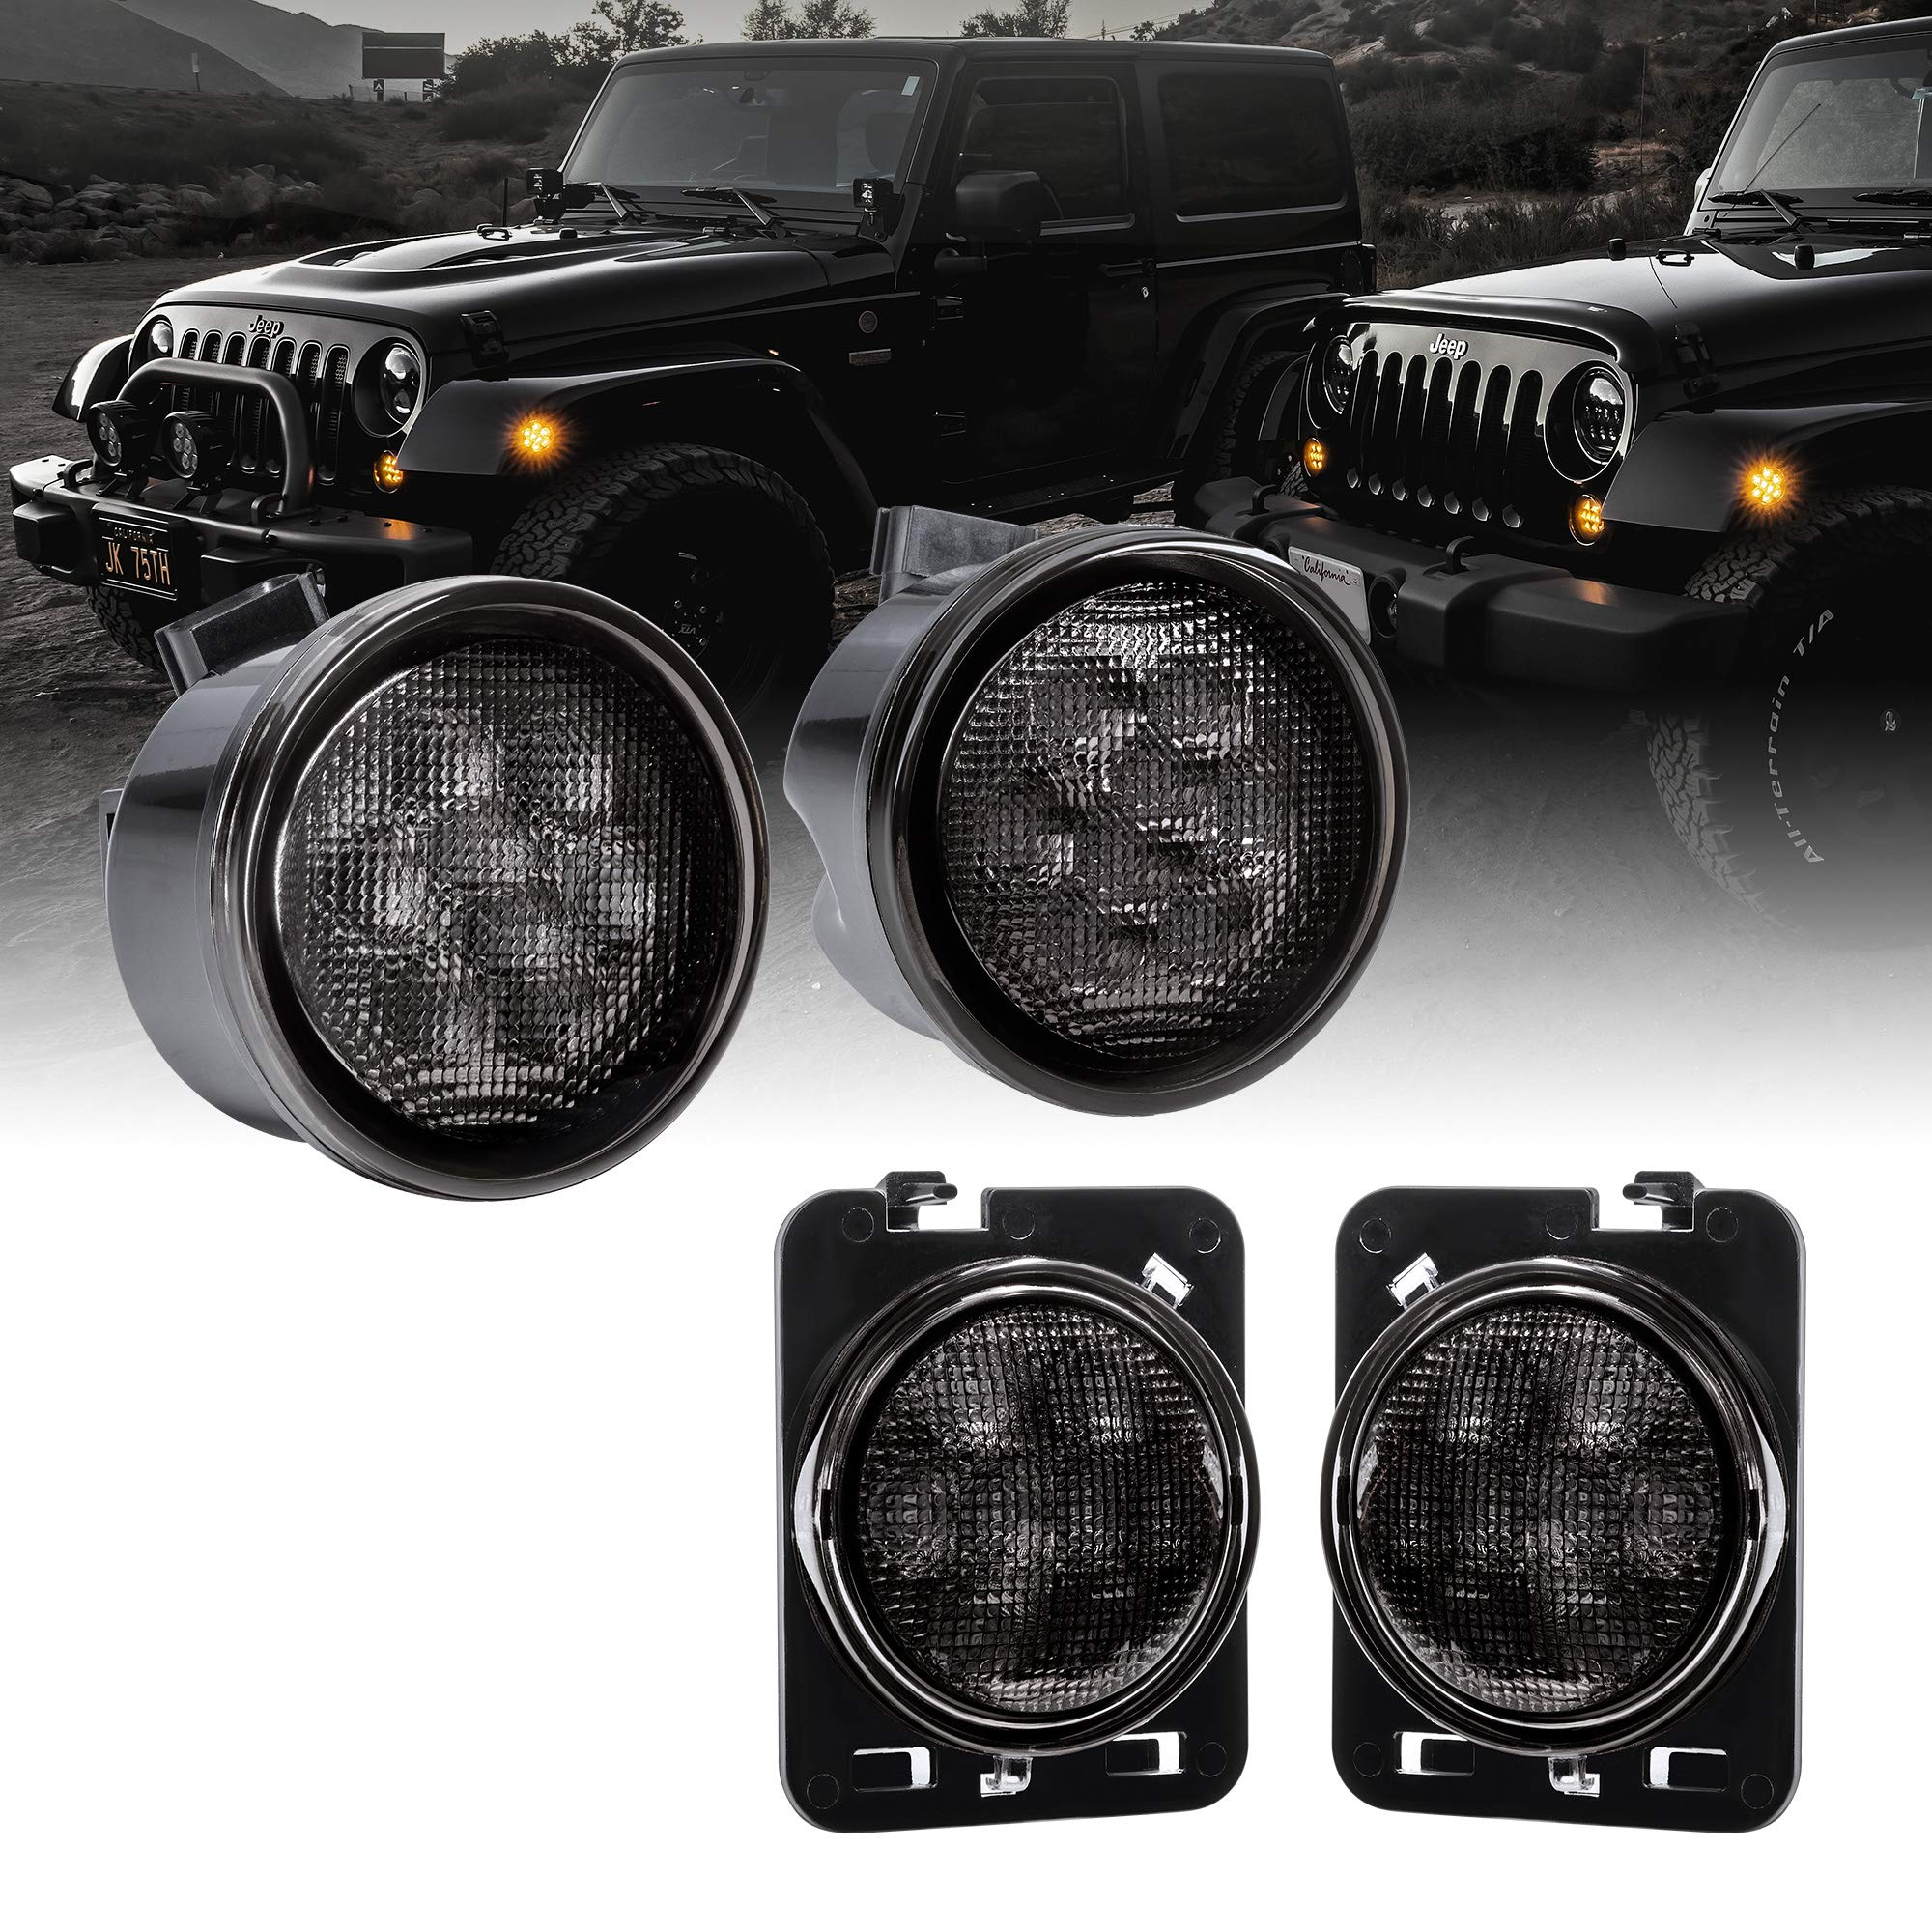 LED Turn Signal & Side Marker Light Replacement for Jeep Wrangler [Smoked Lens] [Amber] LED Light Kit Compatible with Jeep Wrangler JK & Unlimited 2007-2018 Accessories